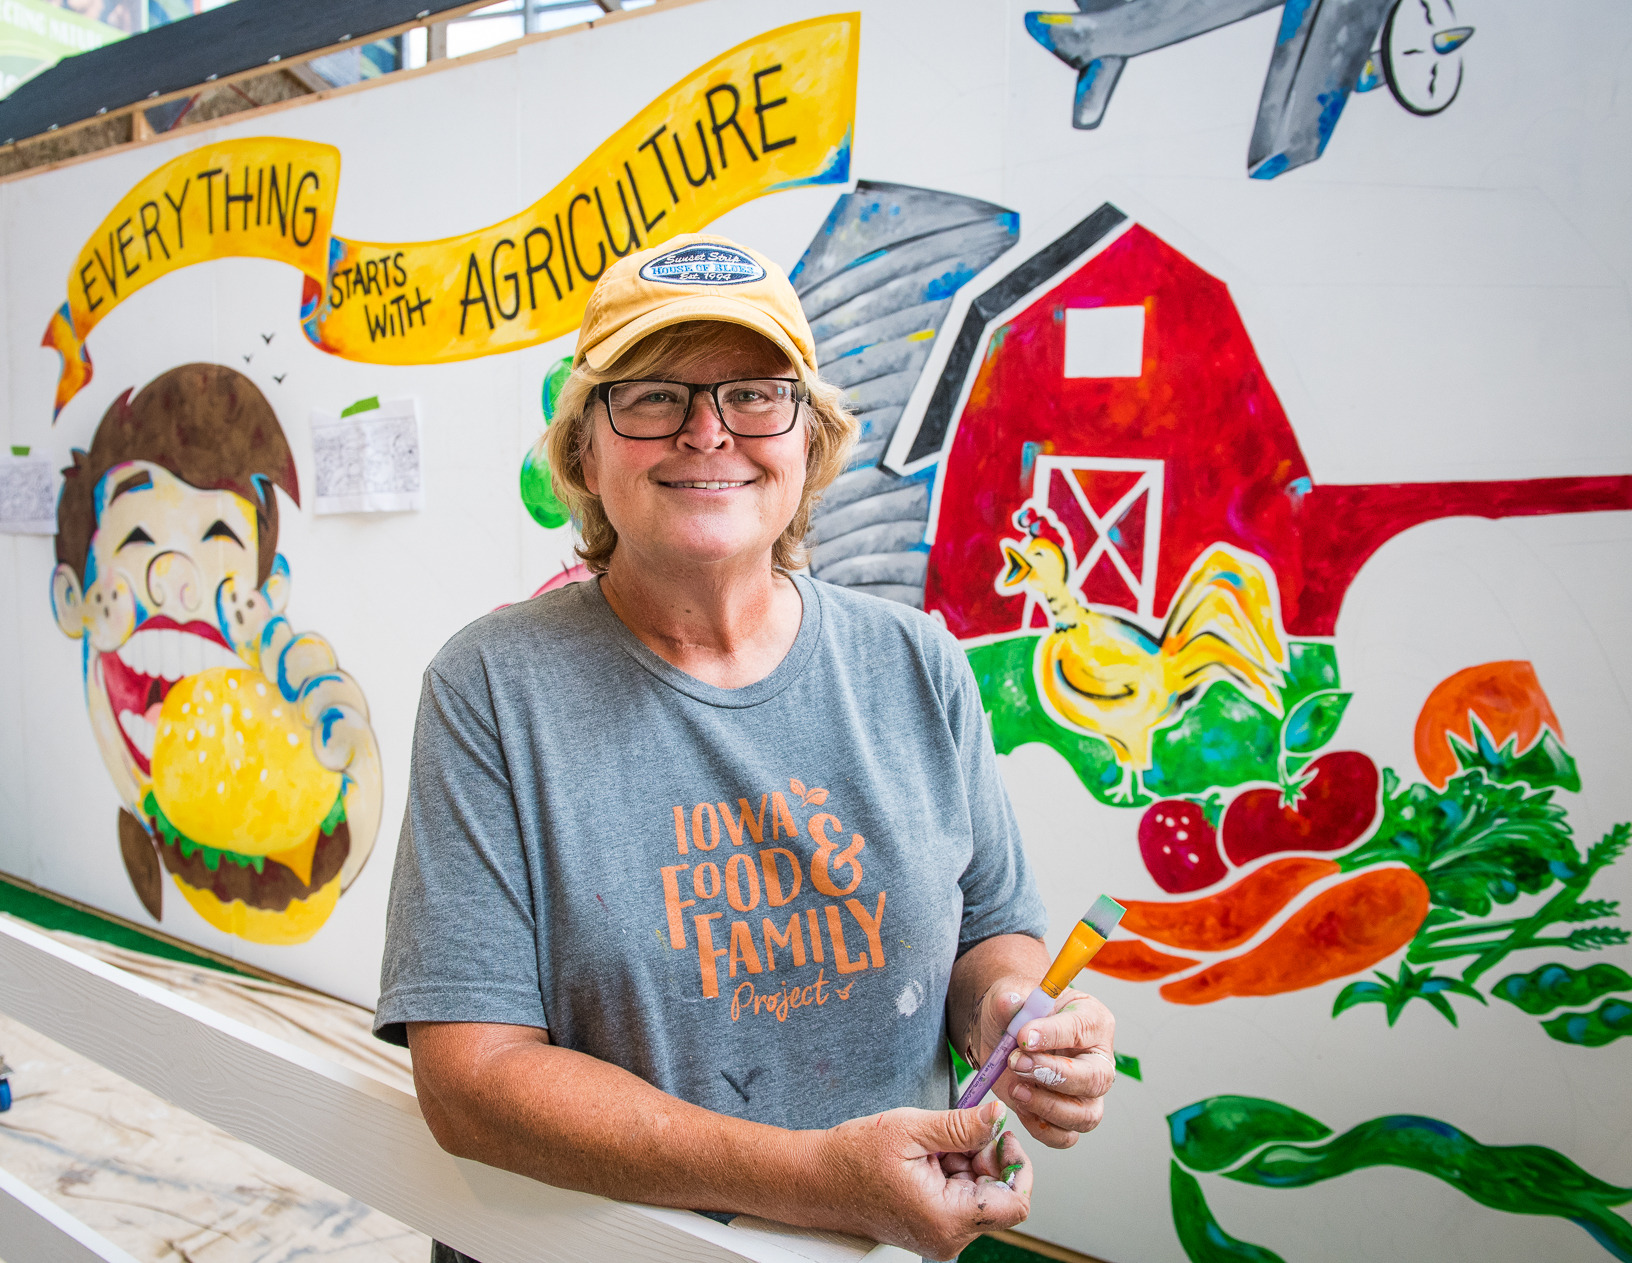 Cate Newberg, marketing director at the Iowa Soybean Association, painted a 'Everything Starts with Agriculture' mural throughout the fair. Photo credit: Joseph L. Murphy/Iowa Soybean Association